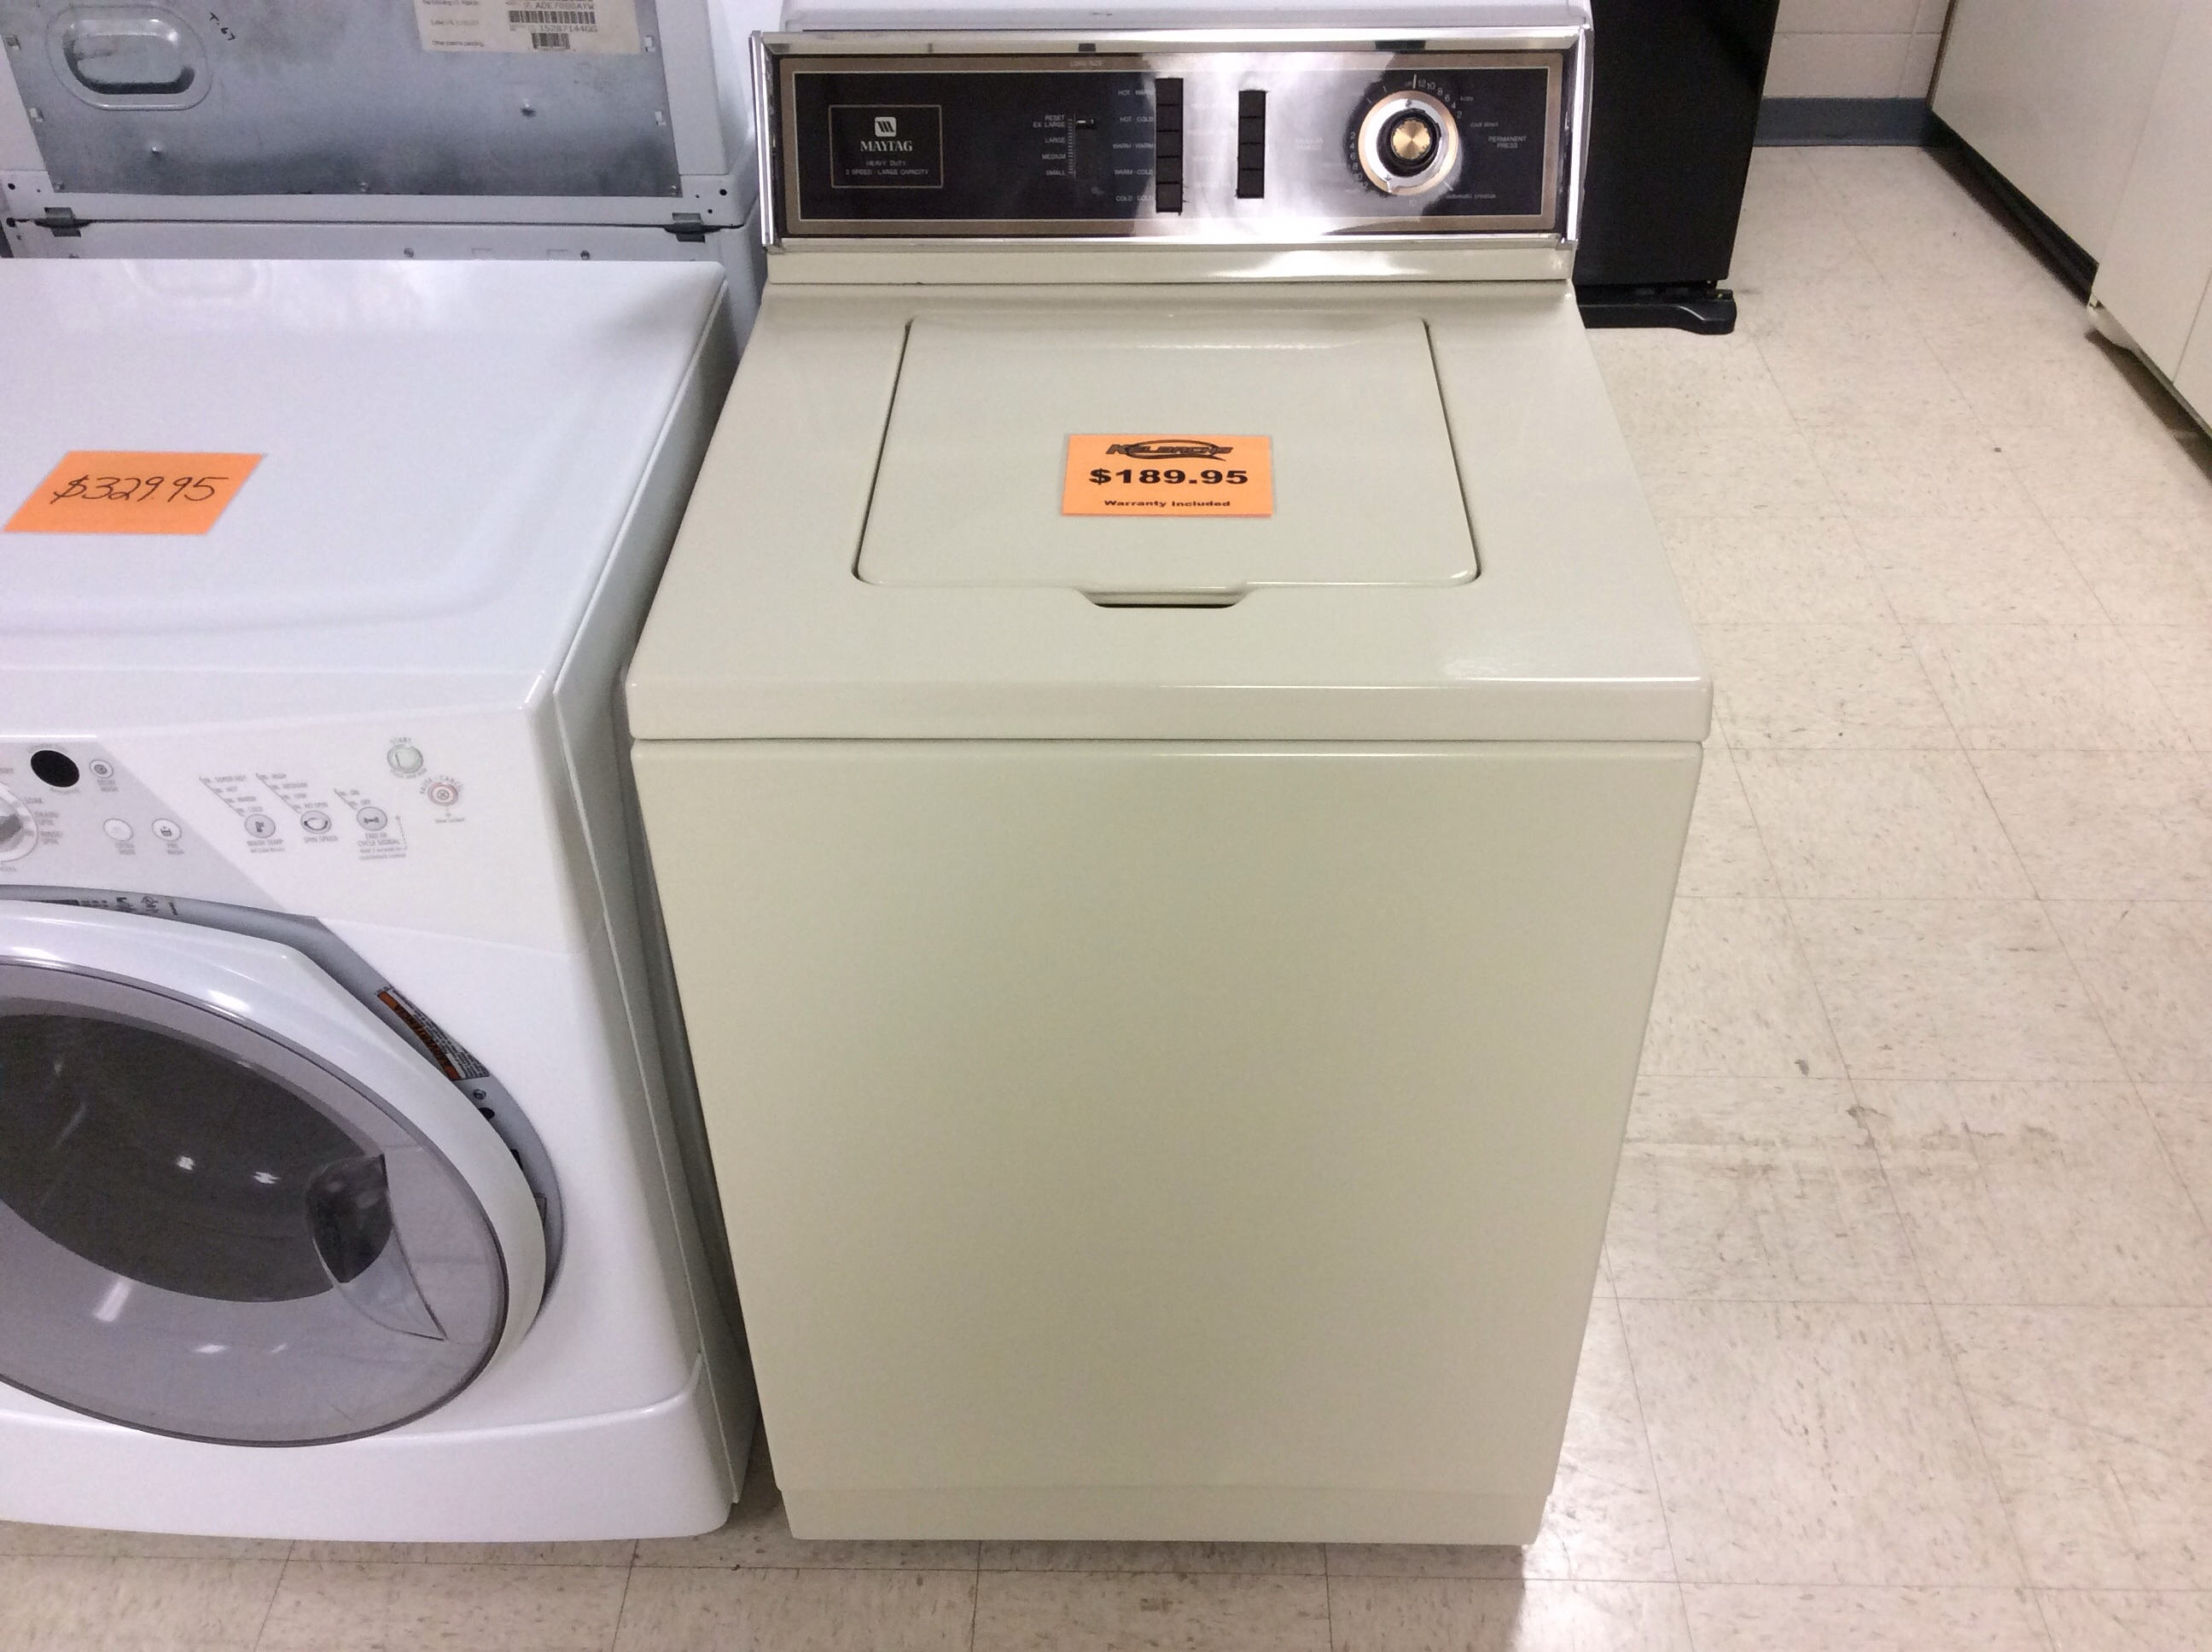 Maytag top load washer kelbachs Best washer 2015